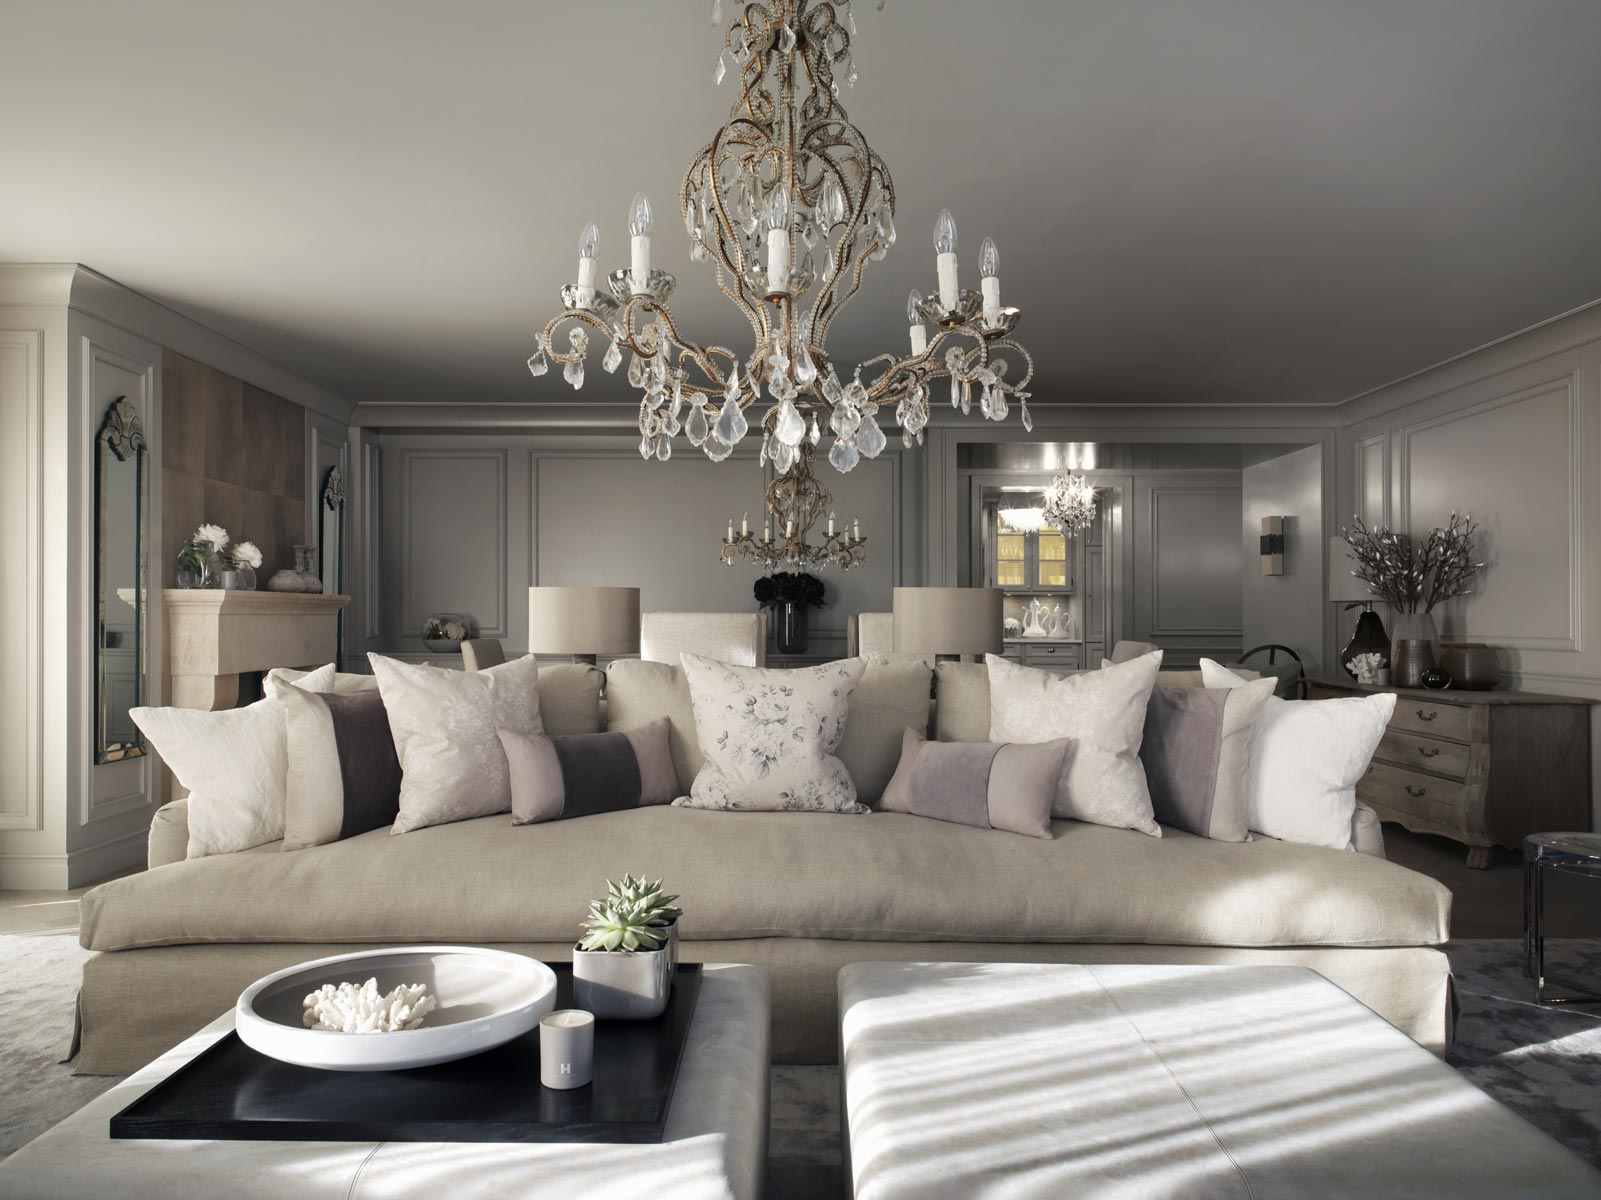 Top 10 kelly hoppen design ideas - Beautiful home interior color ideas ...